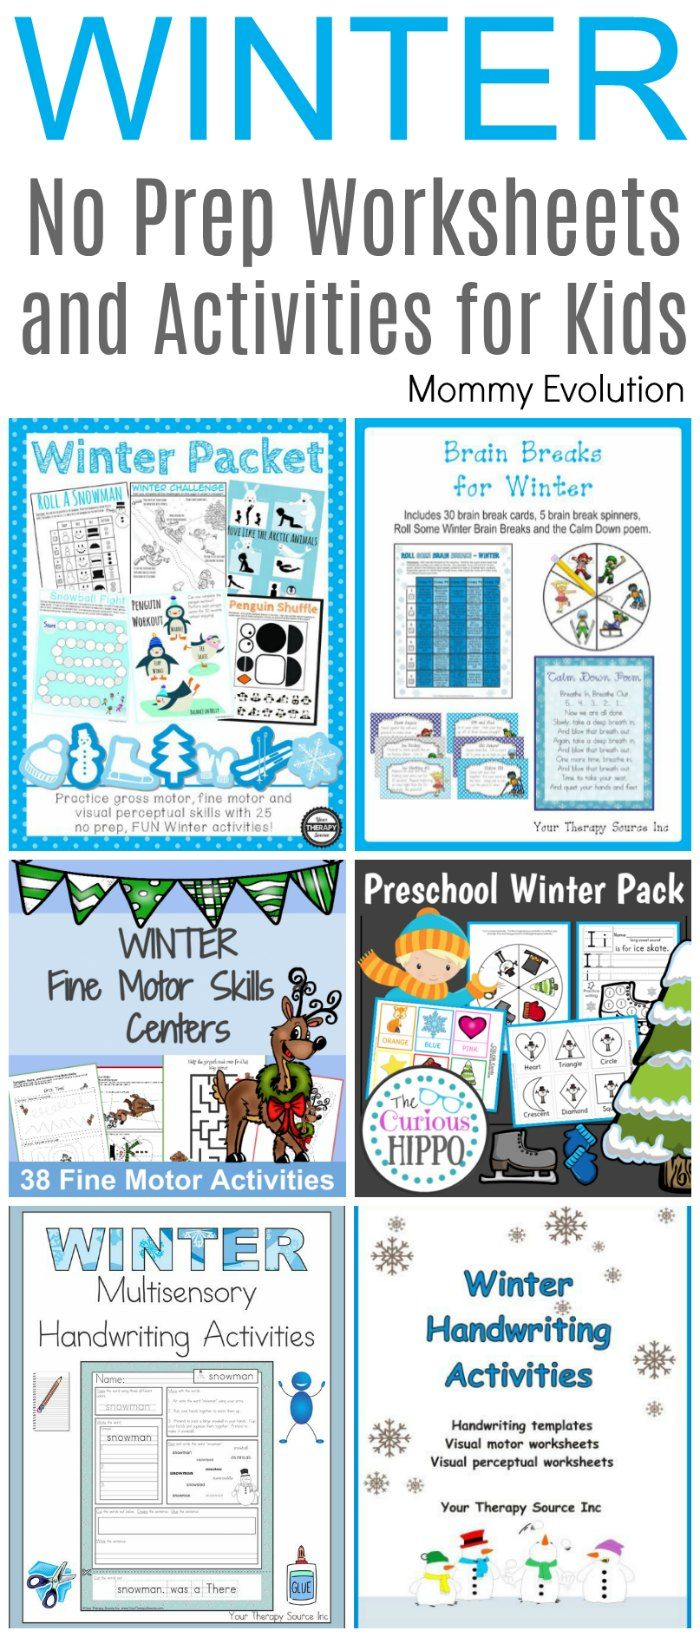 No Prep Winter Worksheets and Activities | Mommy Evolution ...